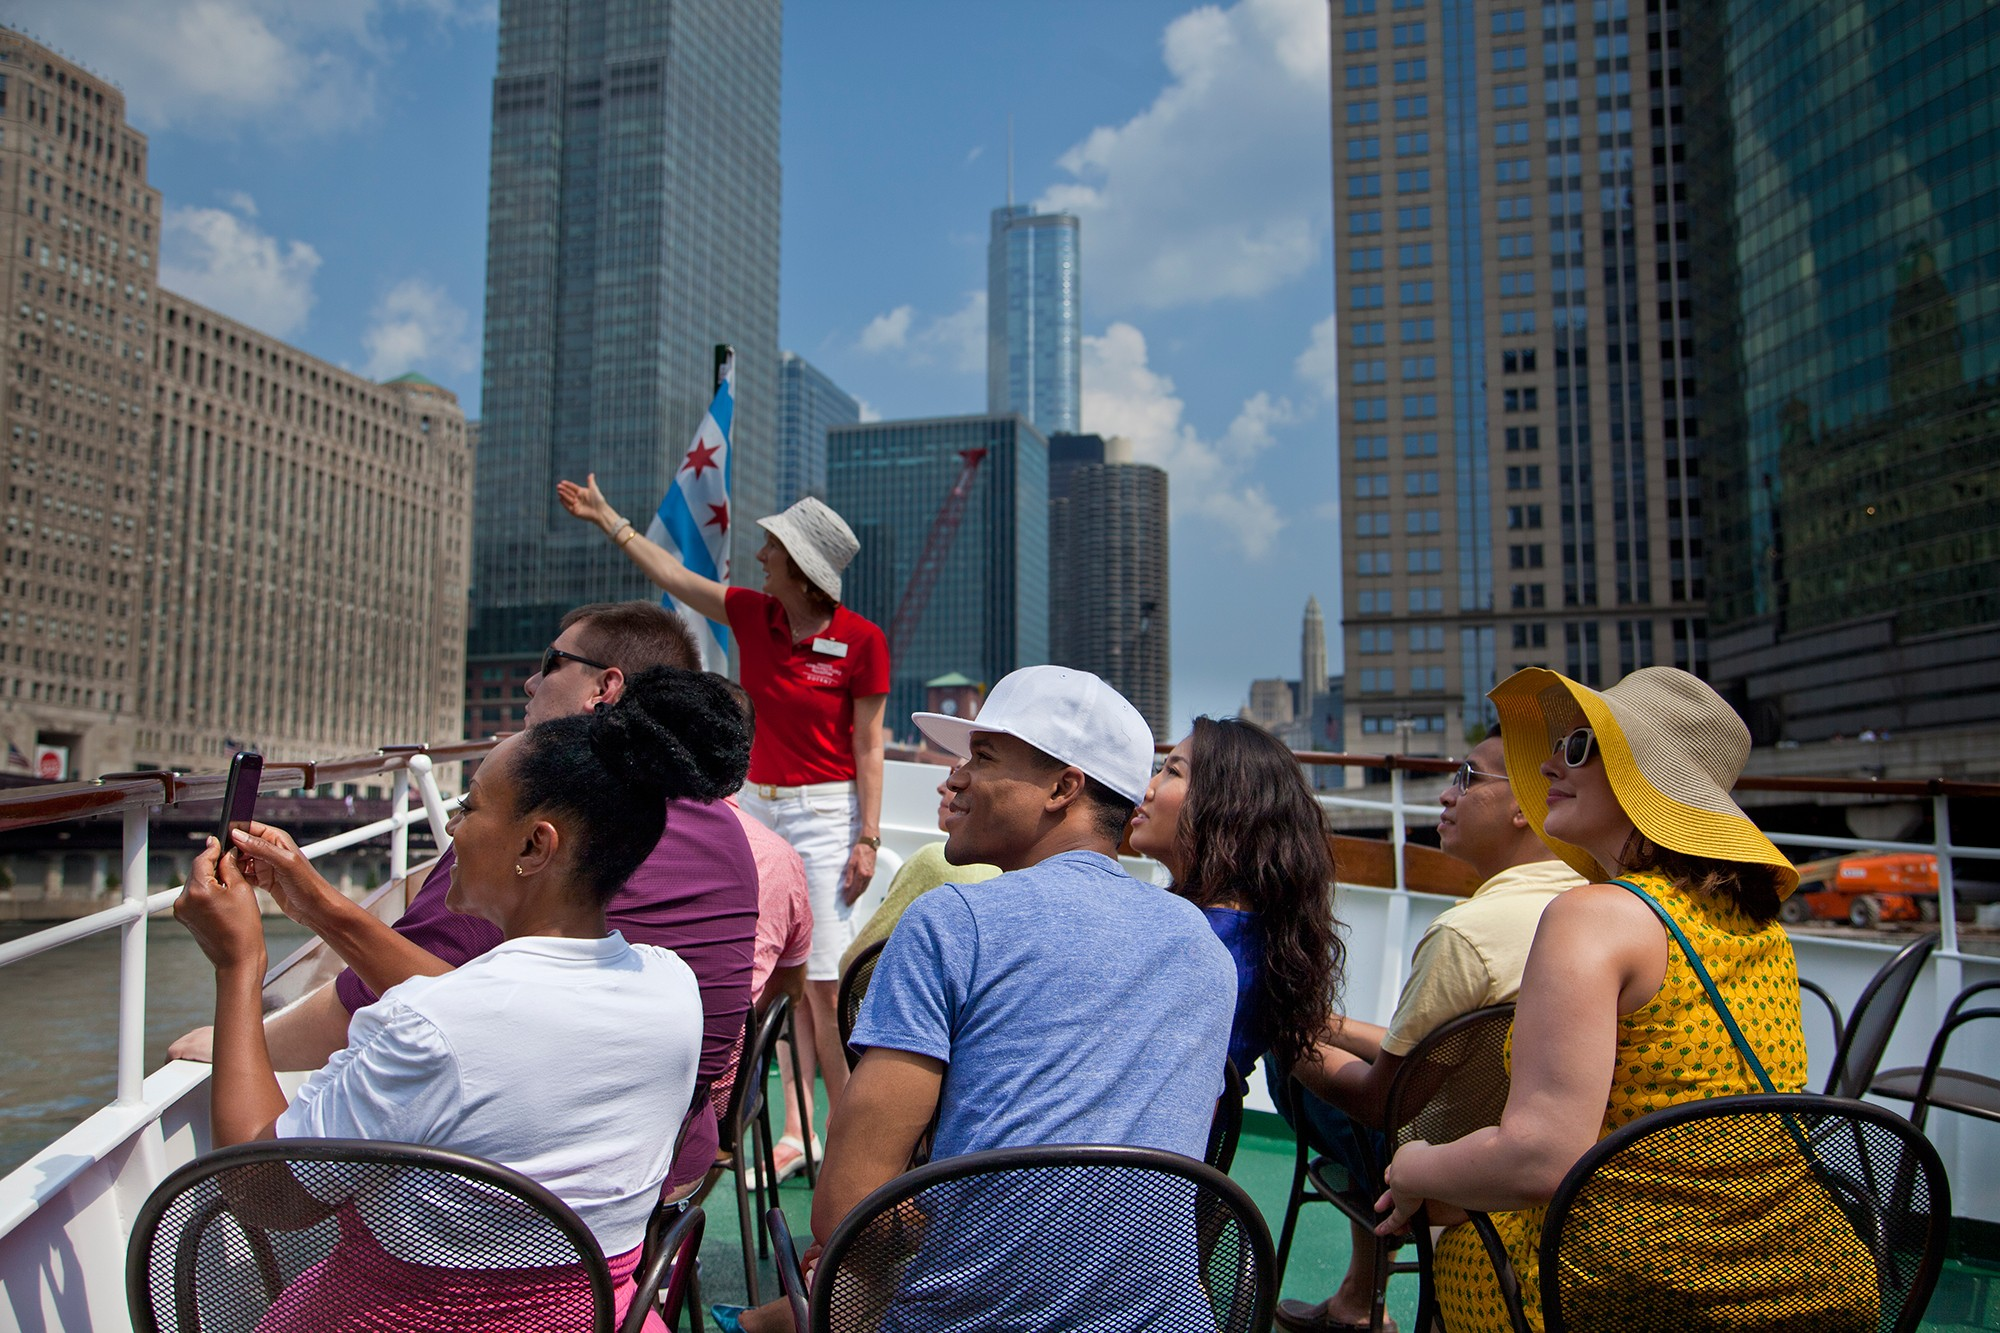 A History Of The Chicago Architecture Foundation River Cruise Aboard Chicagos First Lady Cruises